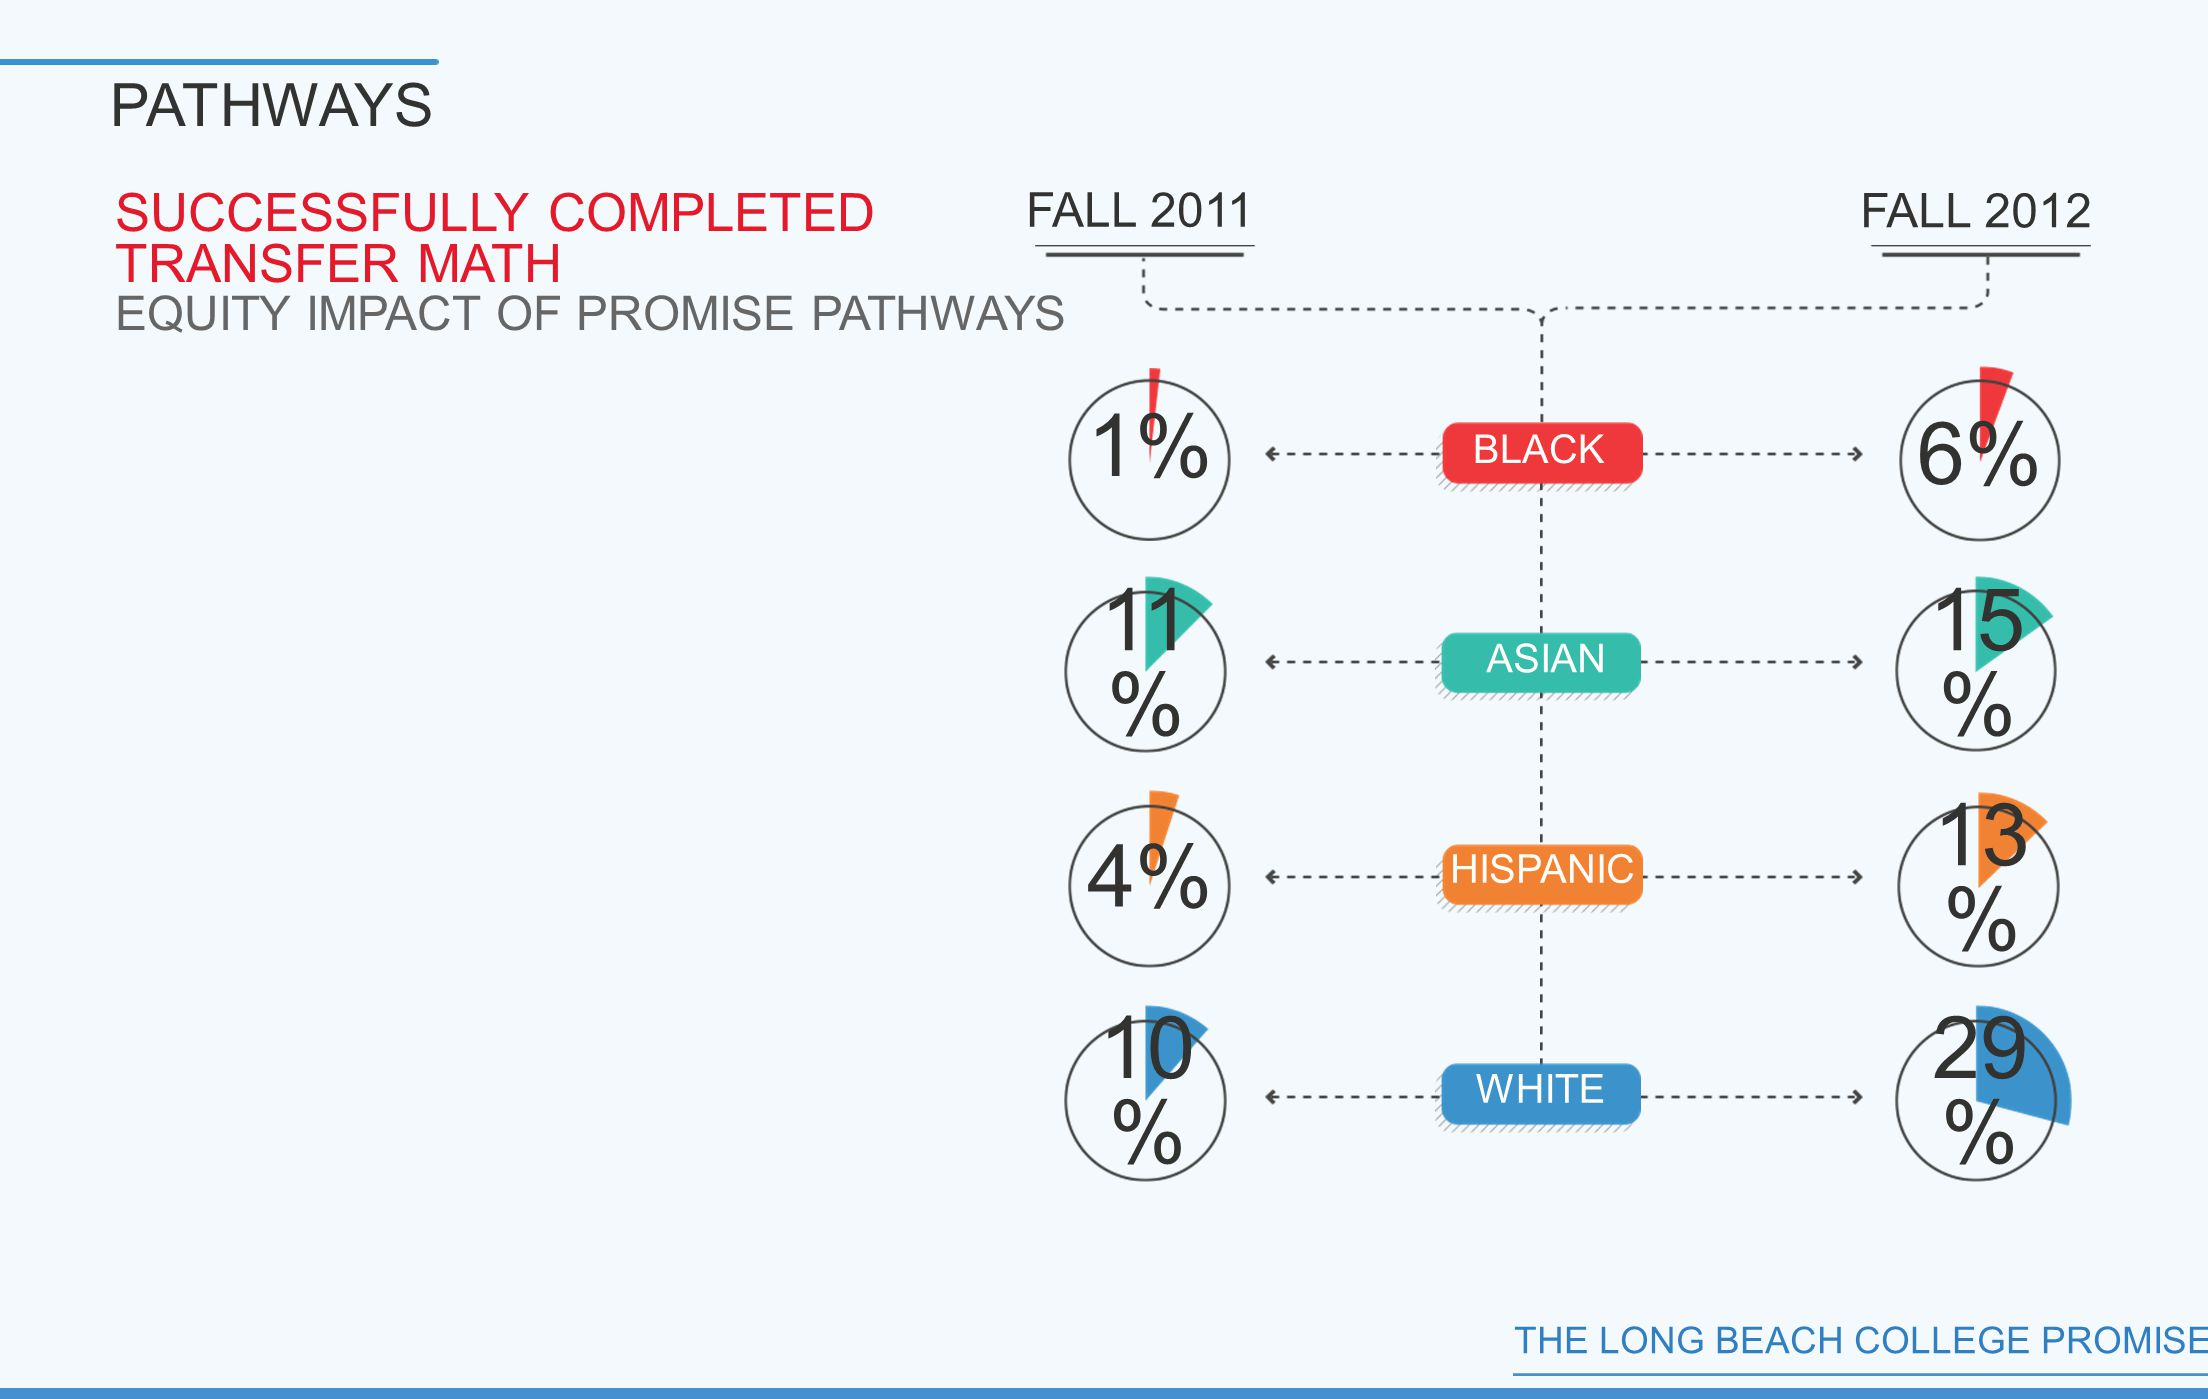 THE LONG BEACH COLLEGE PROMISE PATHWAYS SUCCESSFULLY COMPLETED TRANSFER MATH EQUITY IMPACT OF PROMISE PATHWAYS FALL 2011 FALL 2012 1% 11 % 4% 10 % 29 % 13 % 15 % 6% BLACK ASIAN HISPANIC WHITE